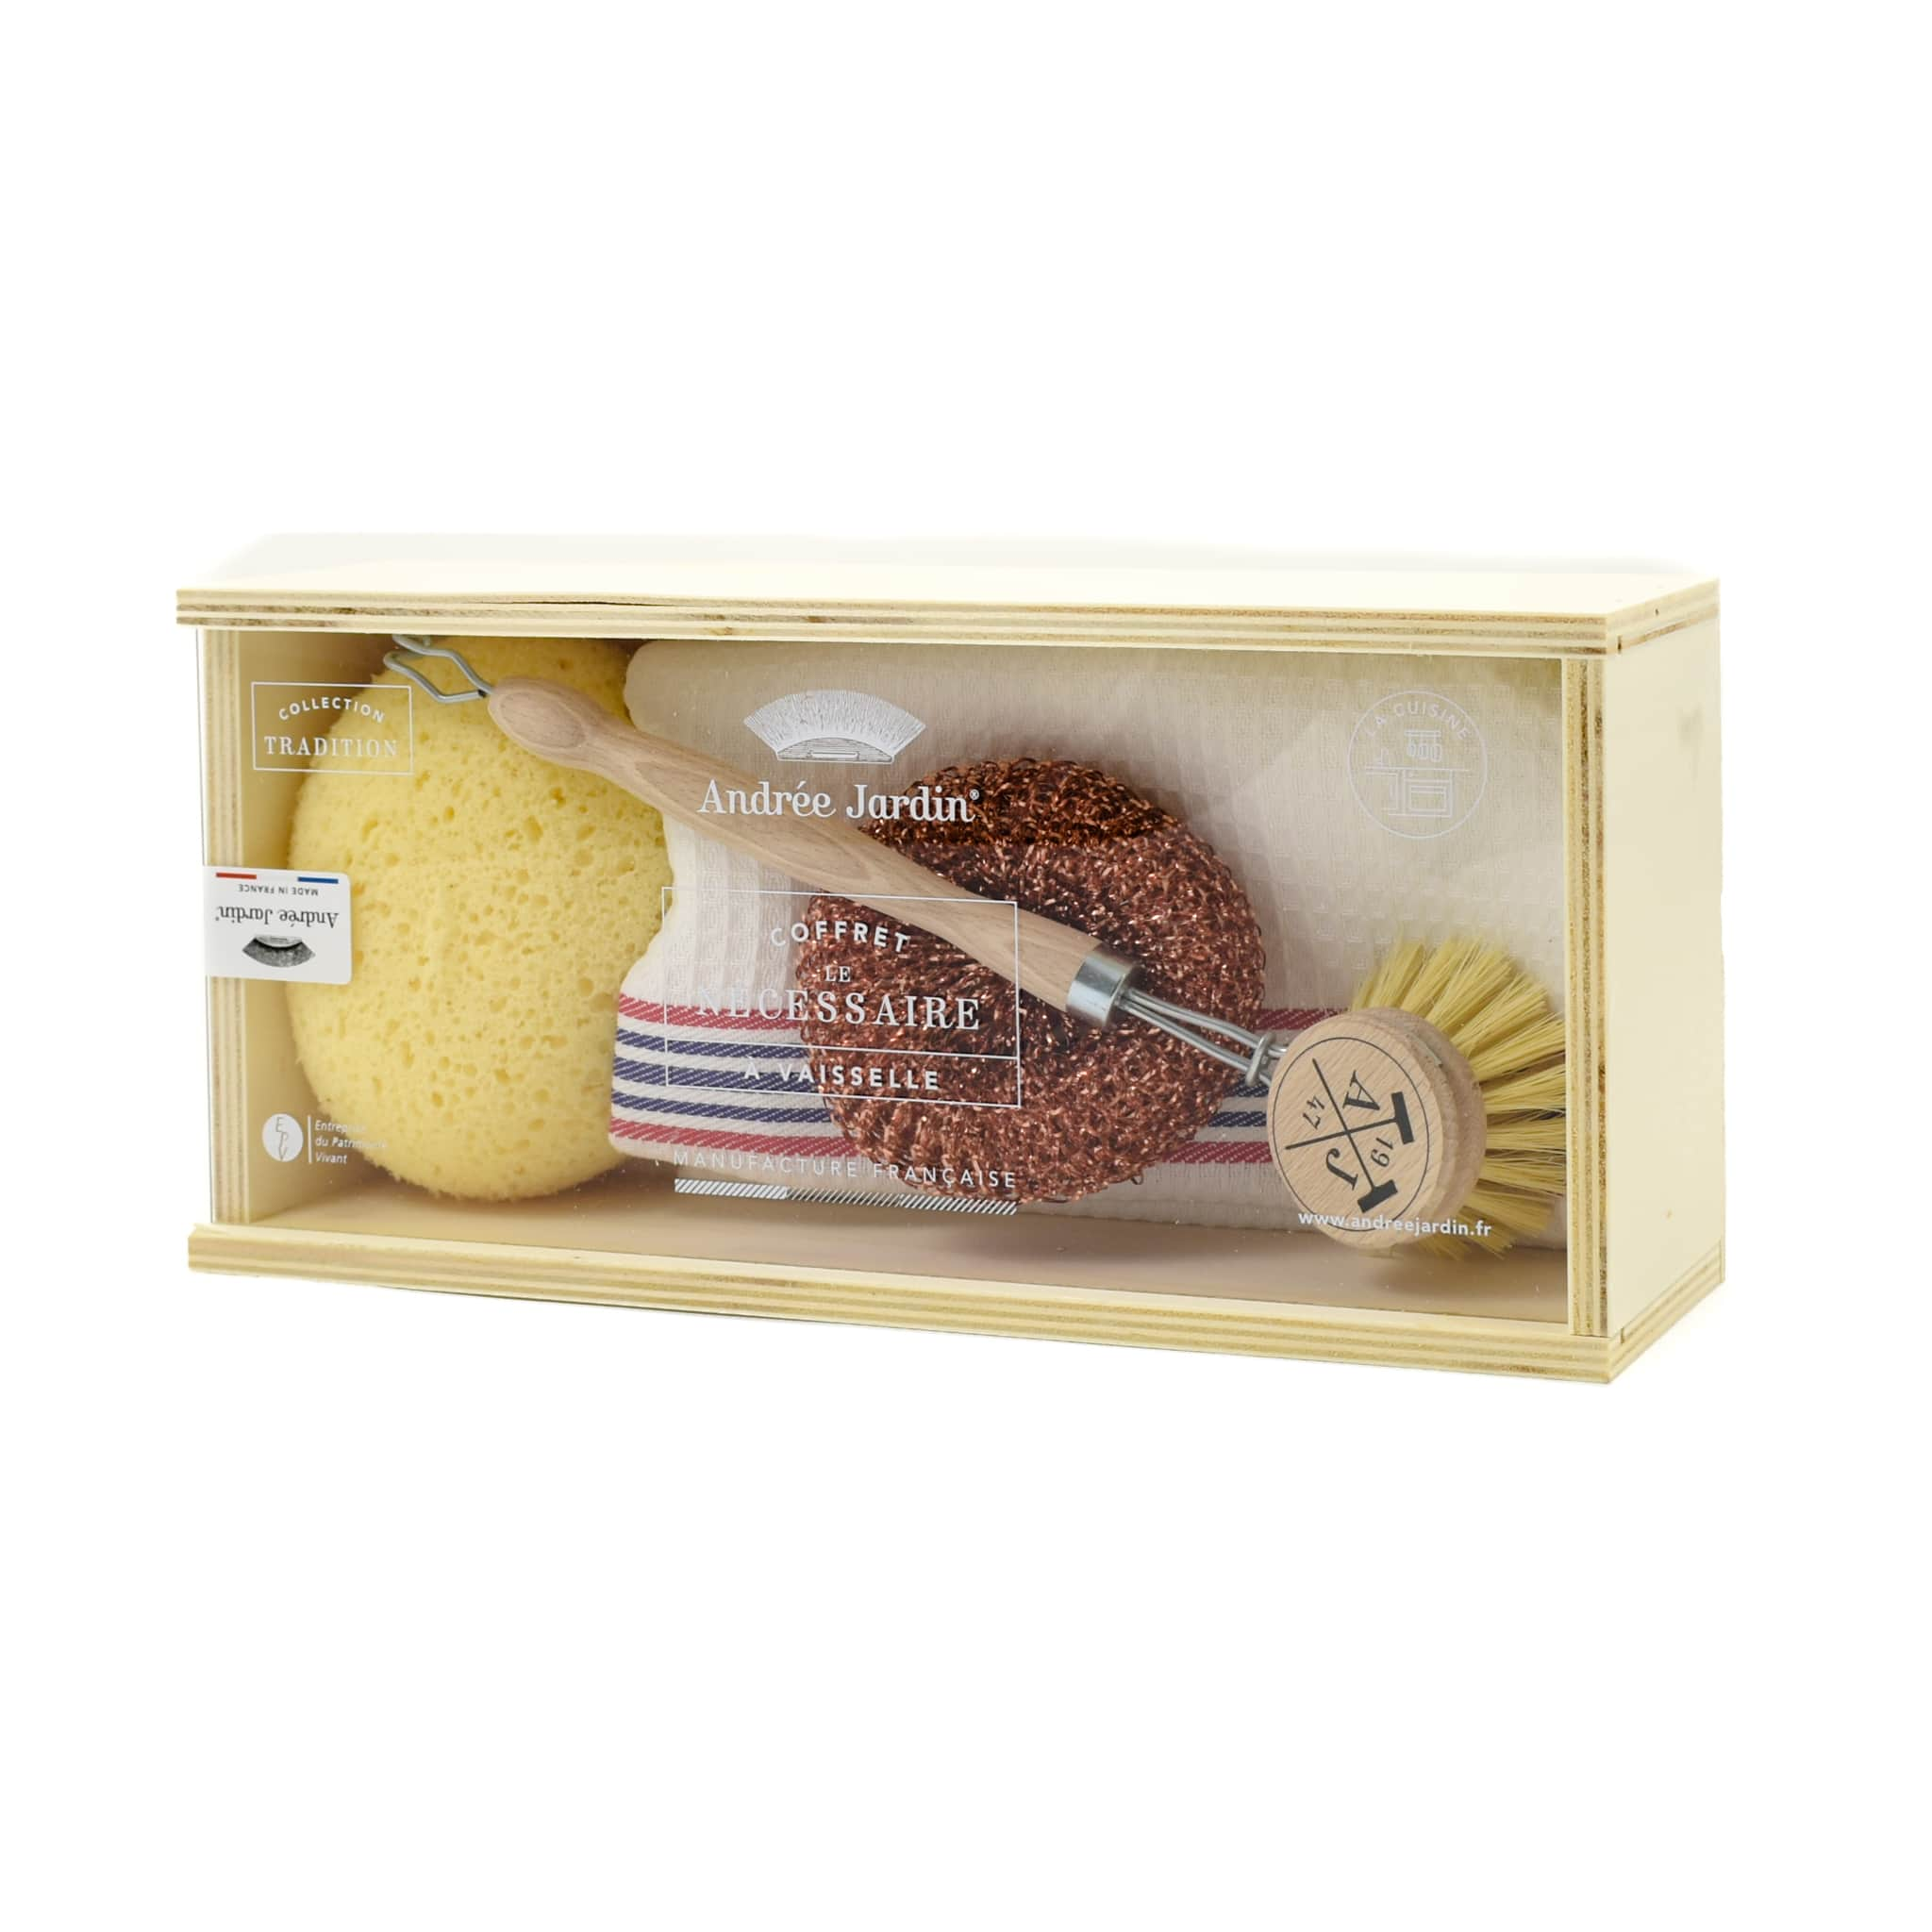 Andree Jardin Dishwashing Gift Box with Copper Ball